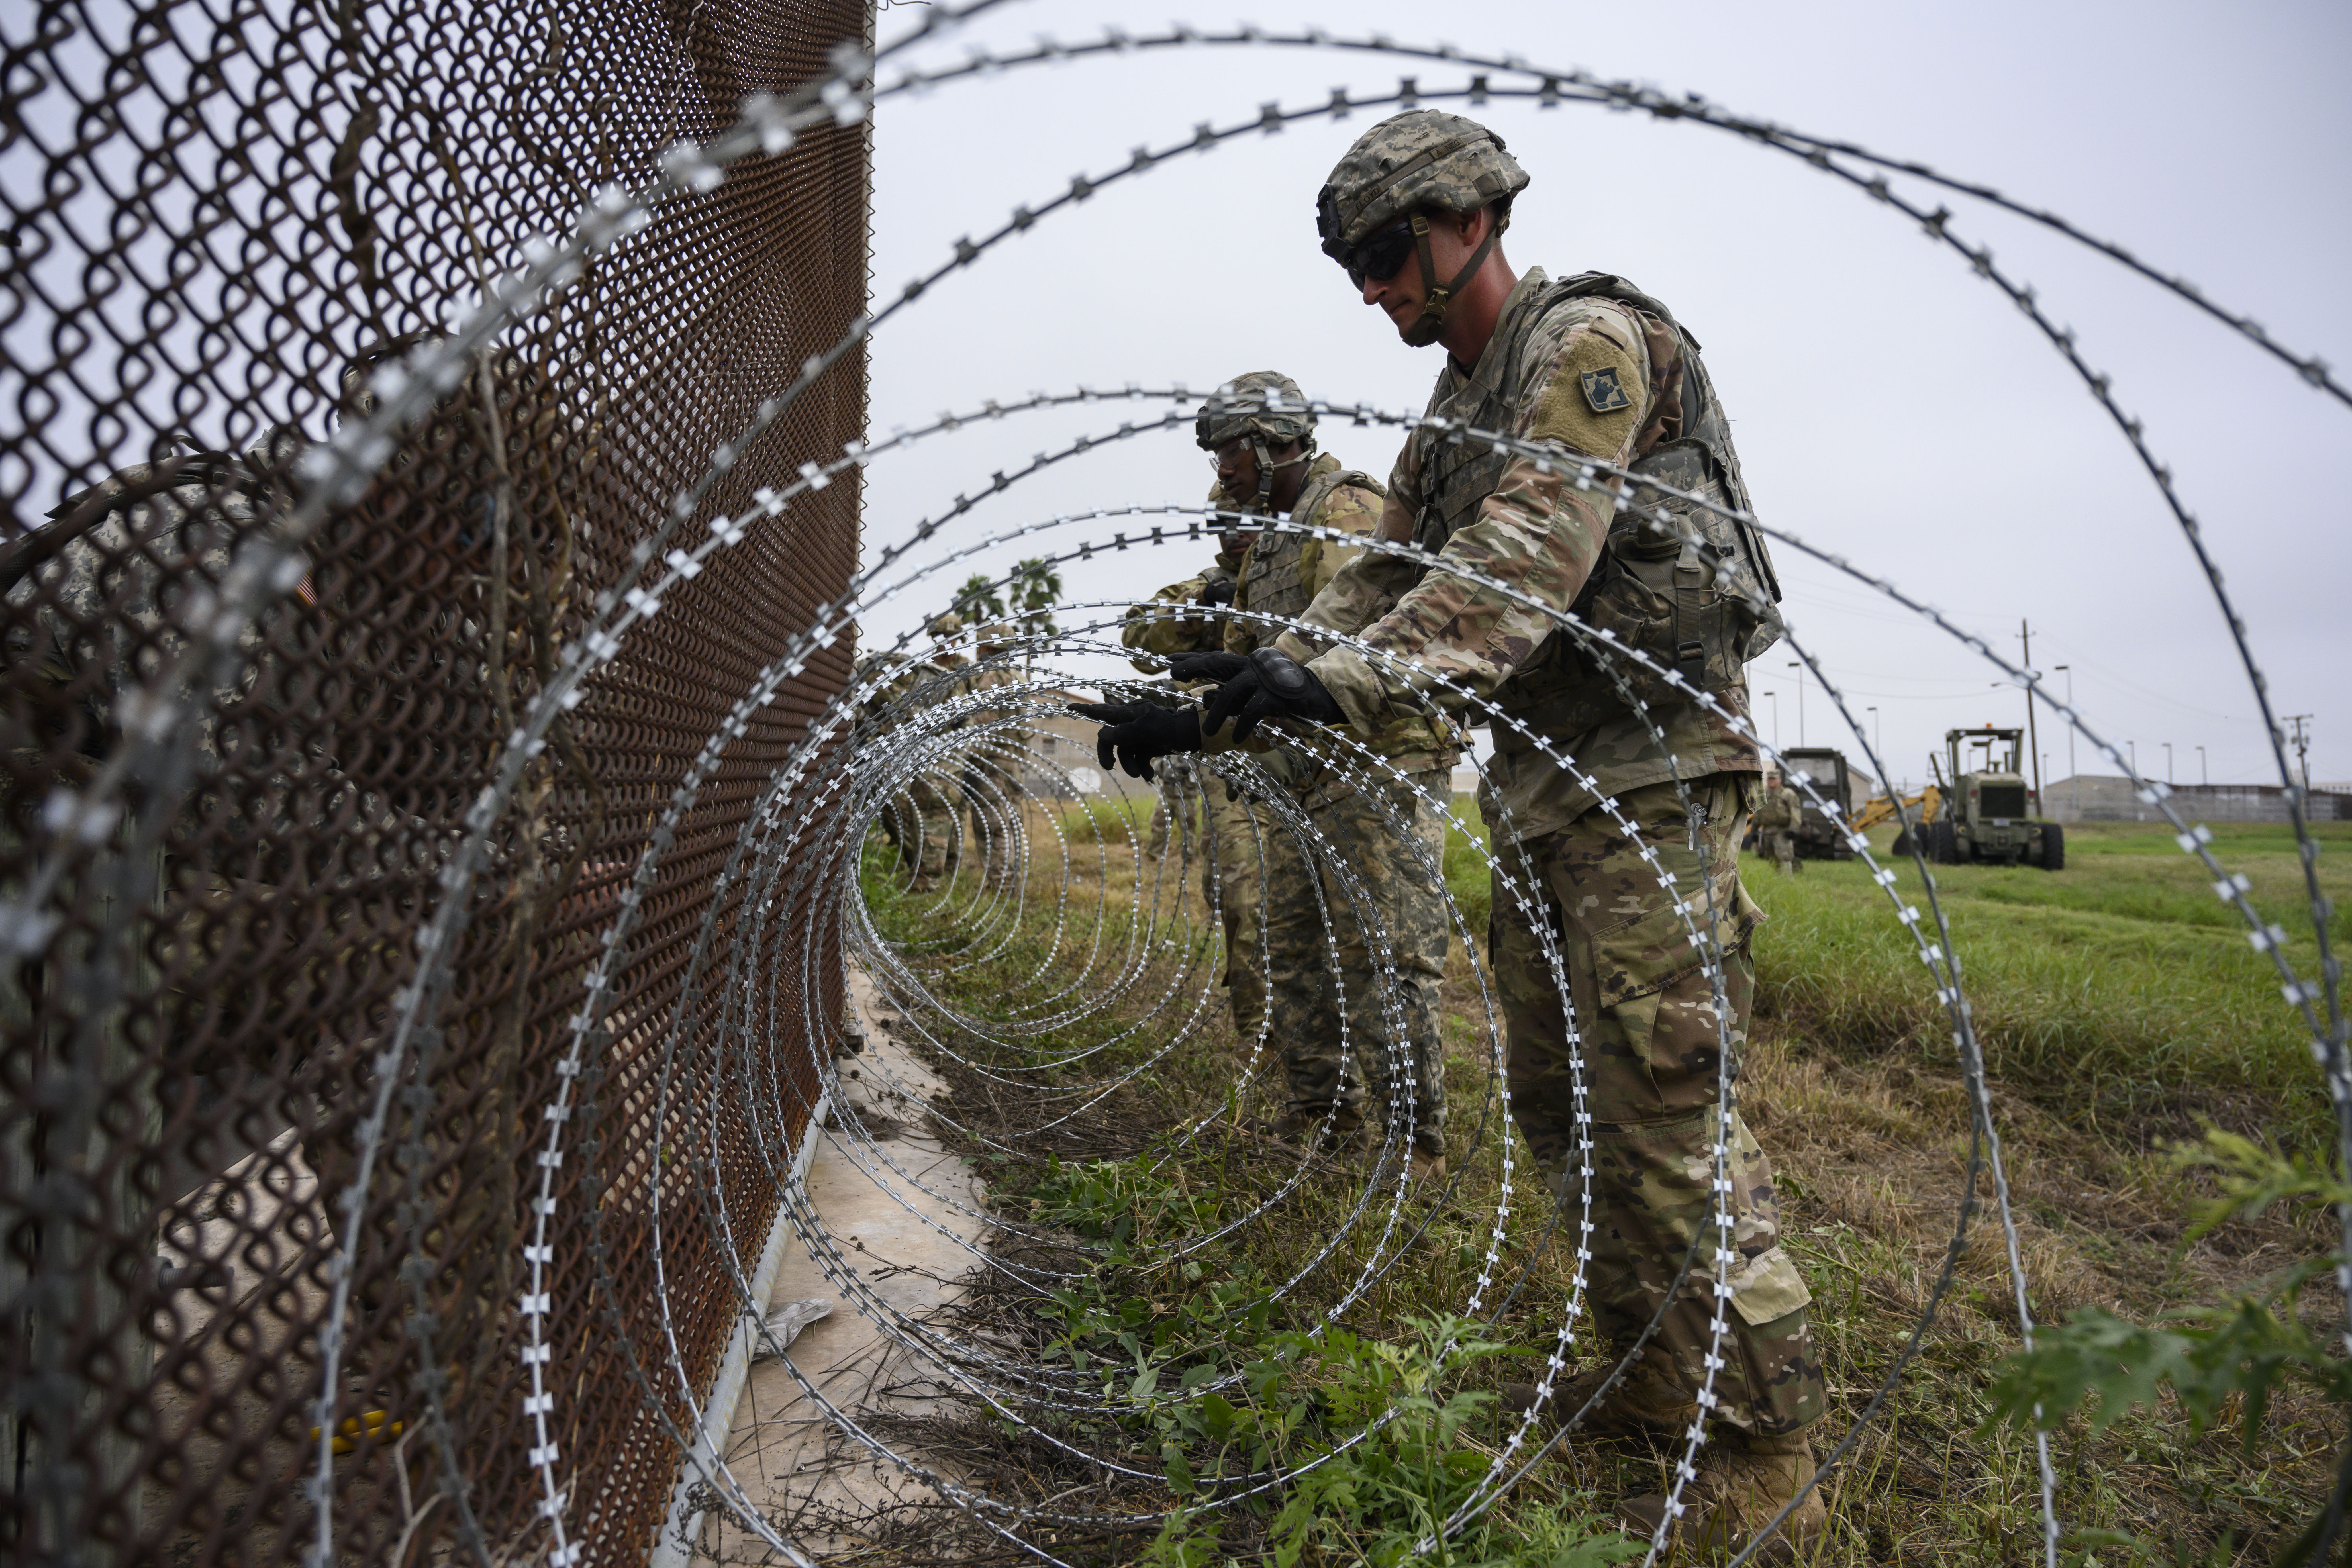 Soldiers put up concertina wire on a border fence near the Brownsville and Matamoros Express International Bridge in Brownsville, Texas on Nov. 11, 2018. MUST CREDIT: Washington Post photo by Calla Kessler